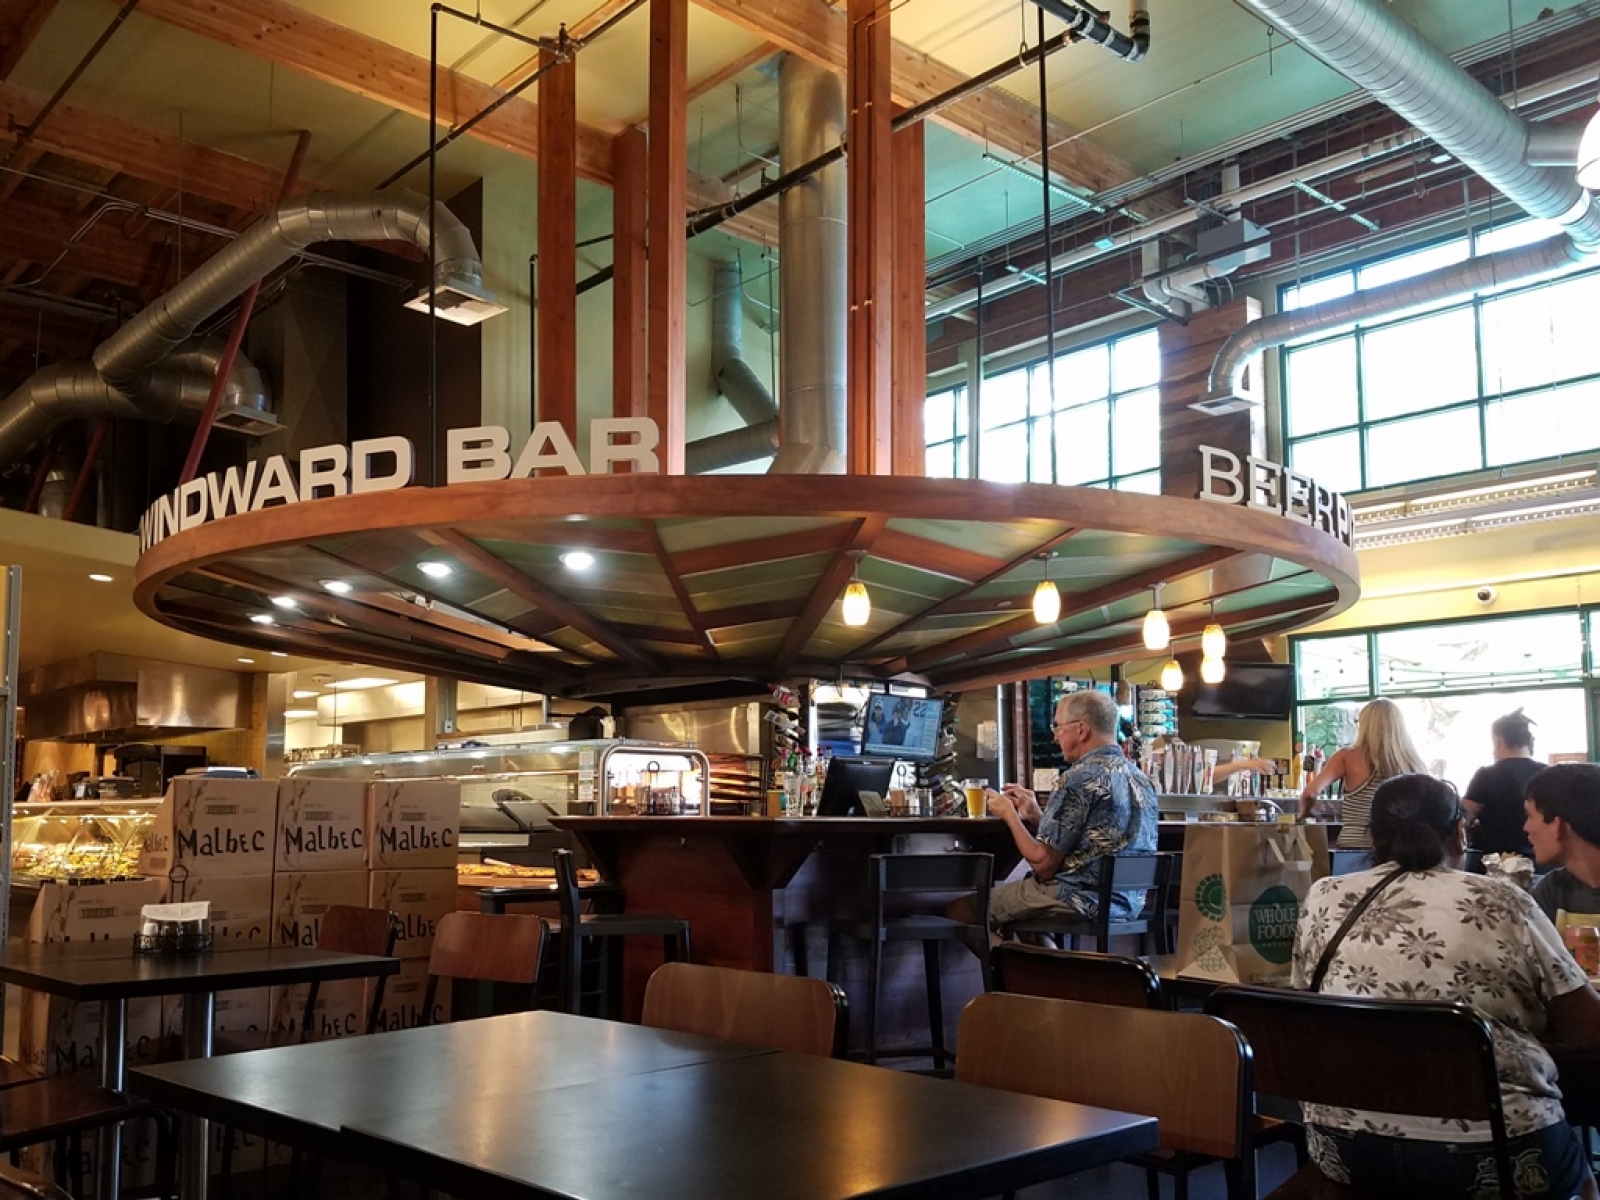 Windward Bar in Whole Foods